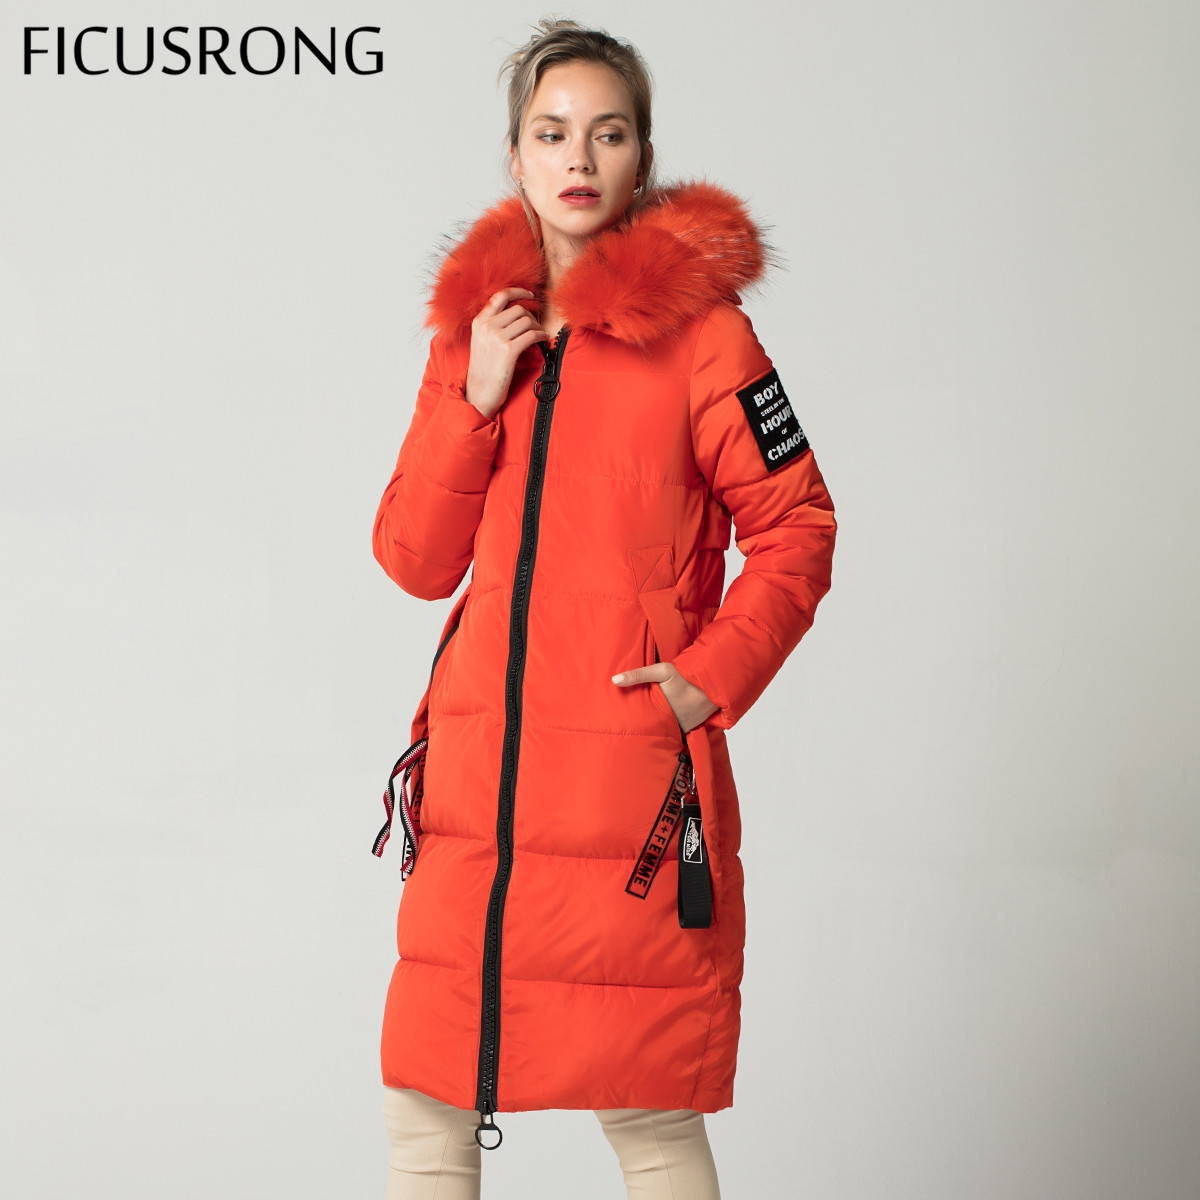 FICUSRONG New Fashionable ORANGE Warm Fur Parkas Long Winter Jacket Women Thicken Slim Female Jacket Winter